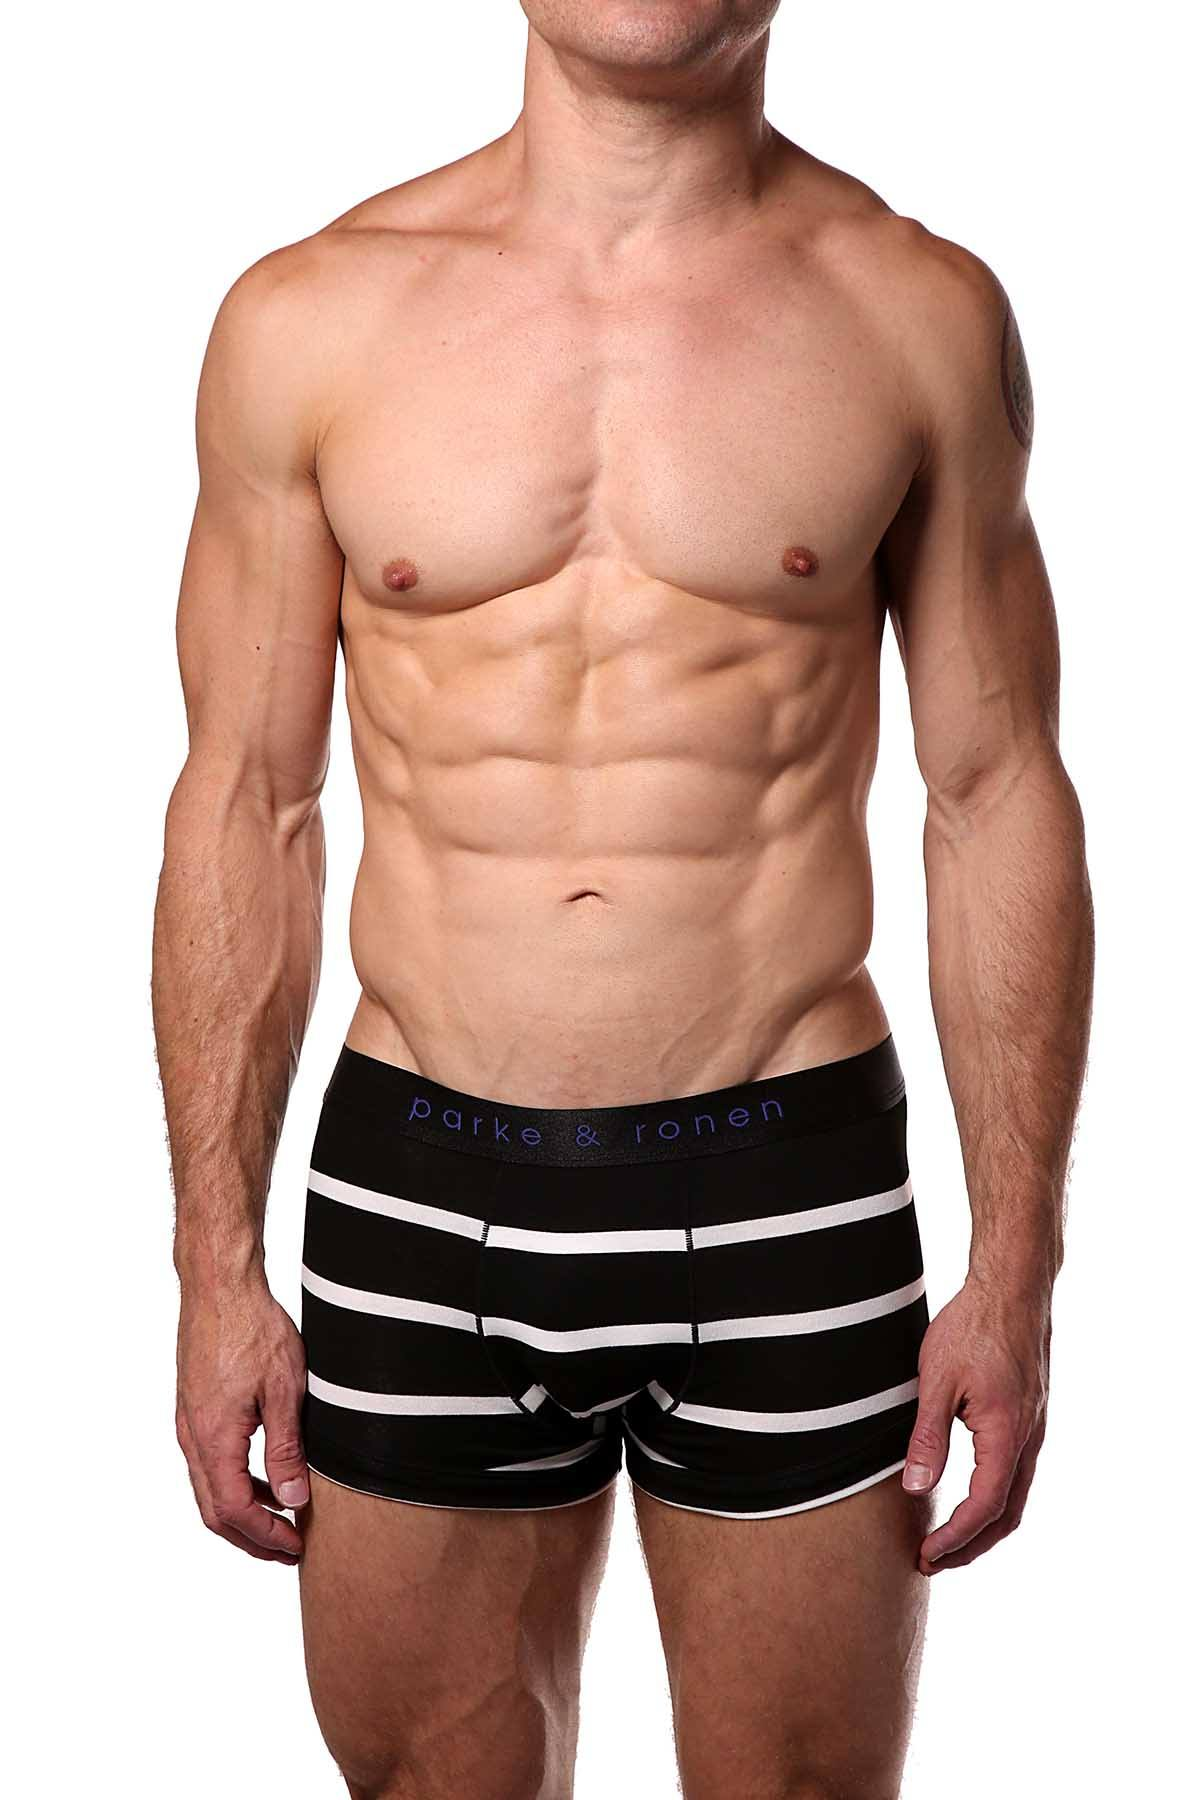 Parke & Ronen Black/White Striped Low-Rise Trunk